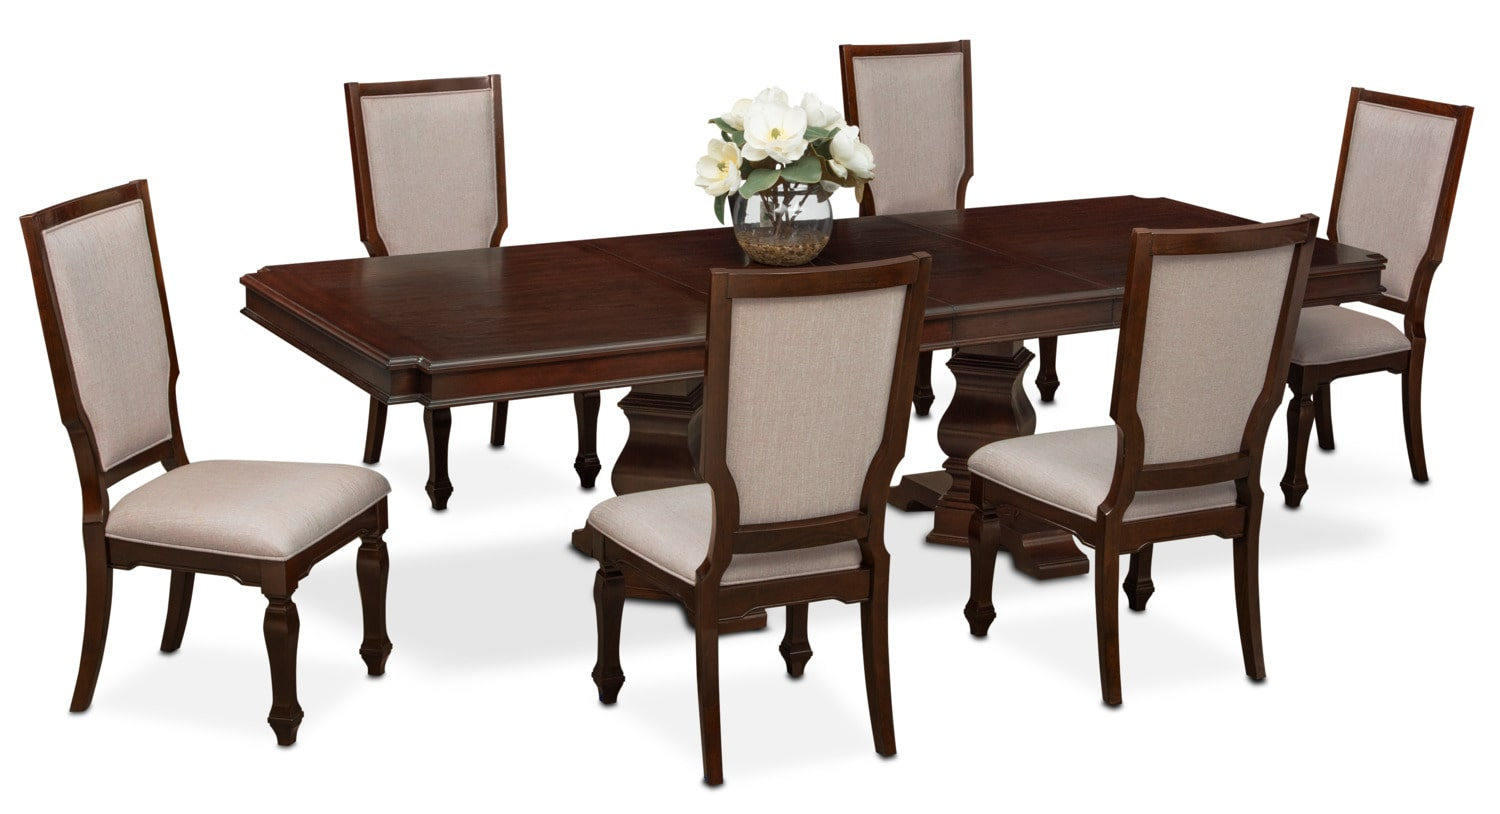 Vienna Dining Table and 6 Upholstered Side Chairs - Merlot